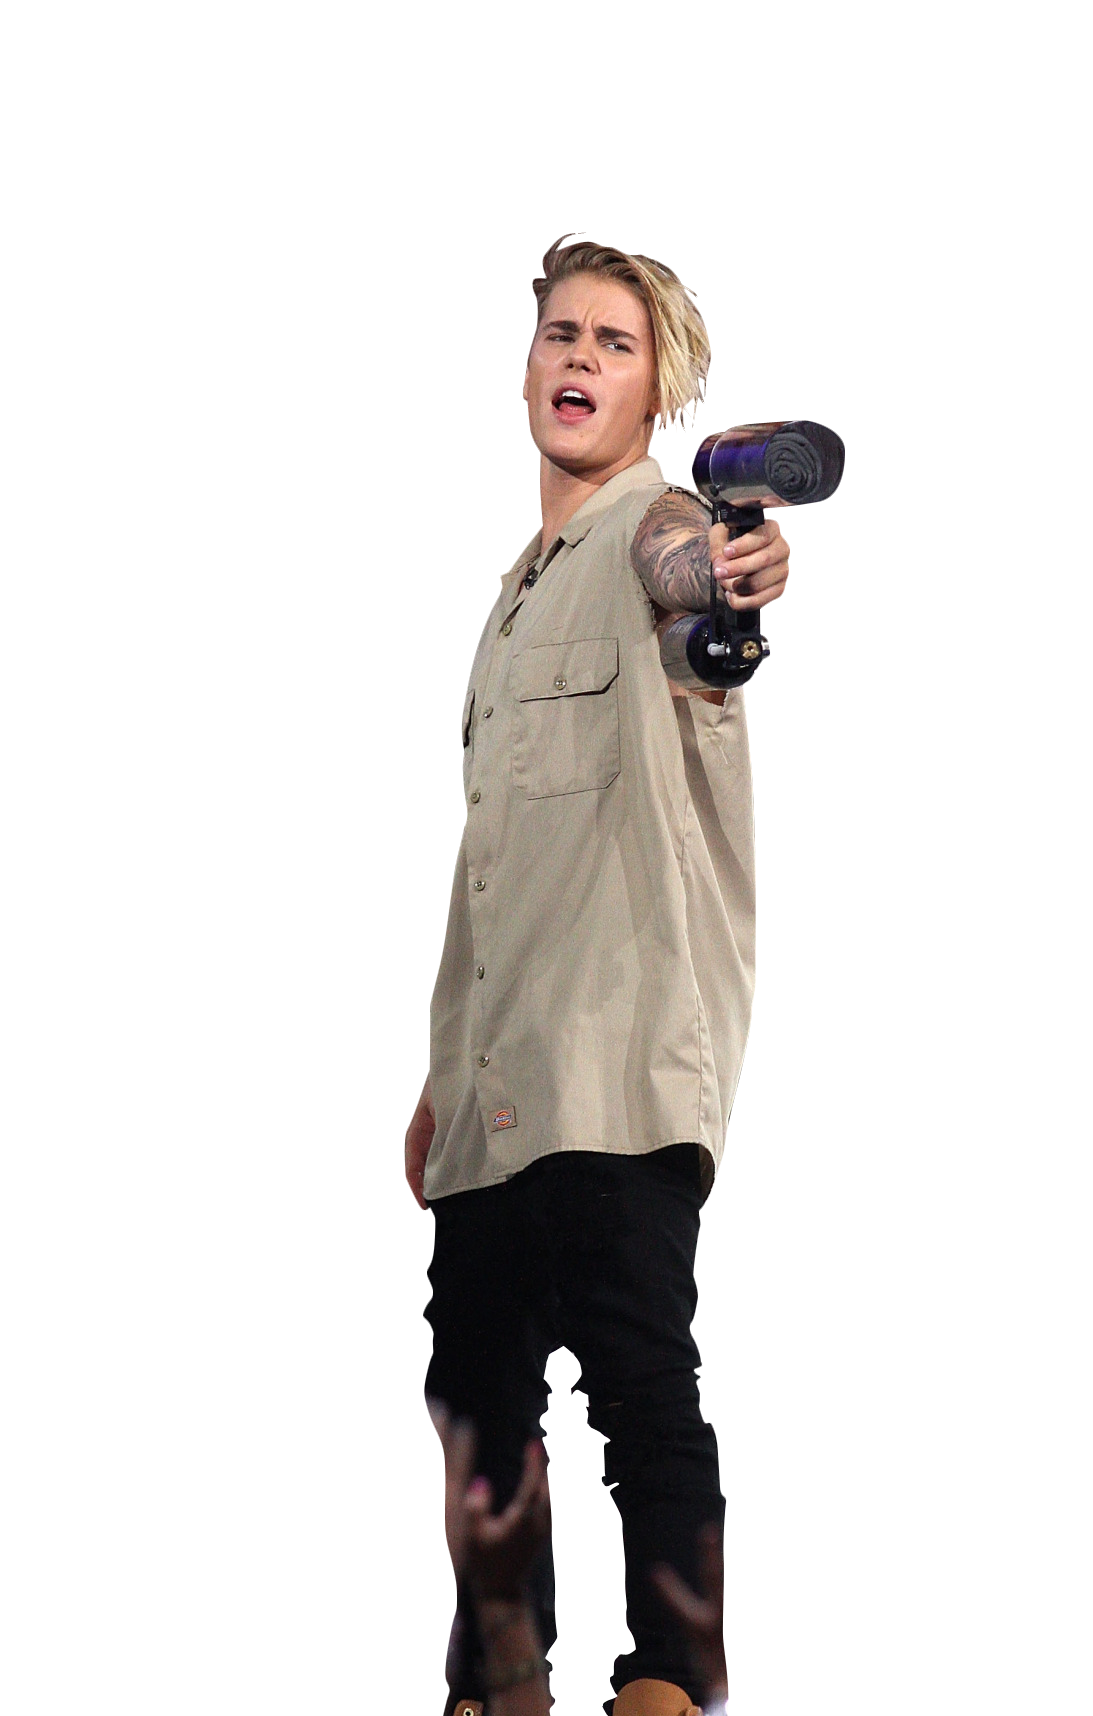 Justin Bieber Holding Gas Canone Png Image Justin Bieber I Love Justin Bieber Justin